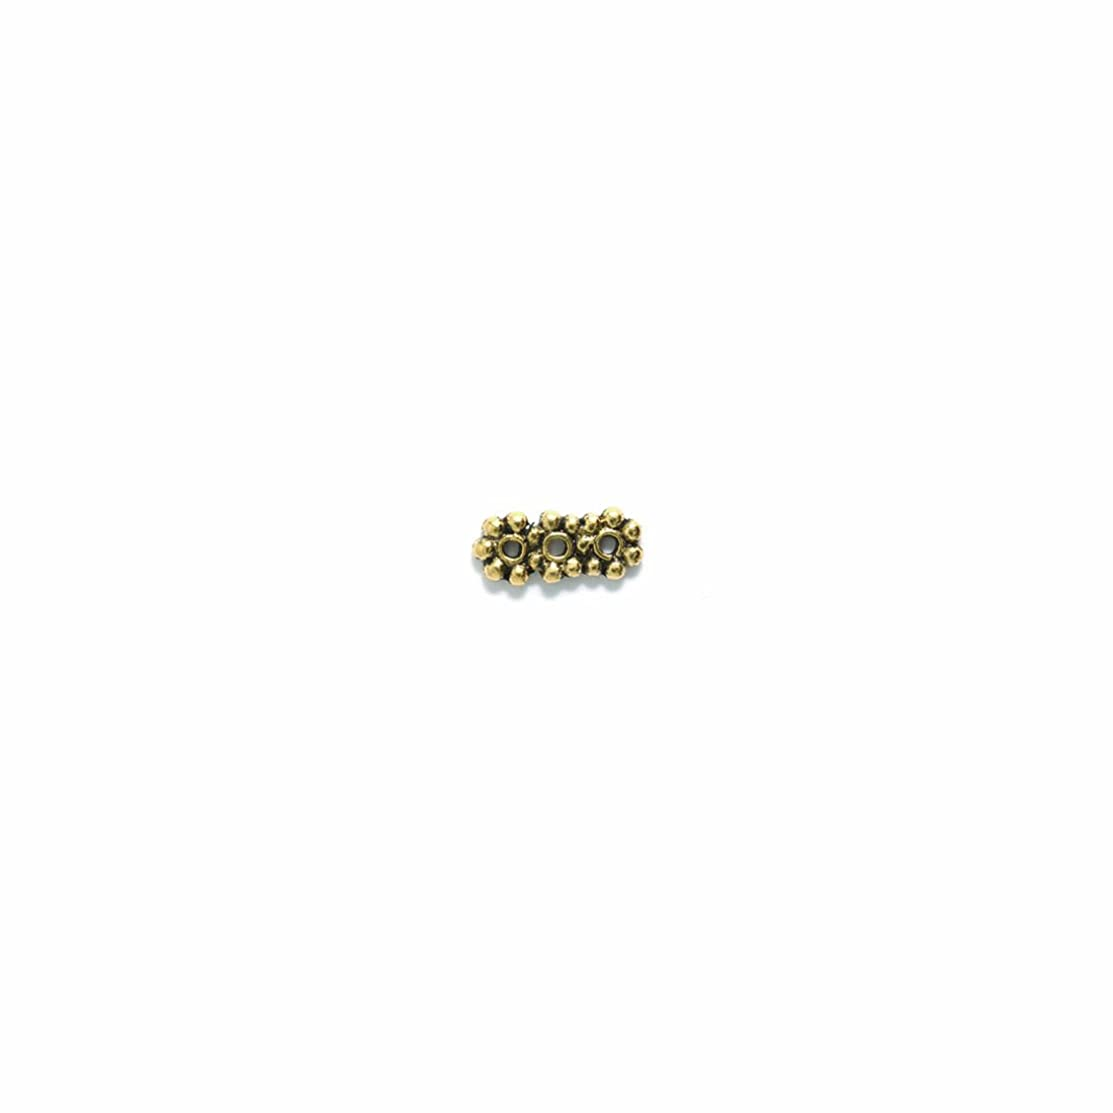 Shipwreck Beads Pewter 3-Hole Daisy Spacer Bar, Antique Gold, 6 by 15mm, 6-Piece